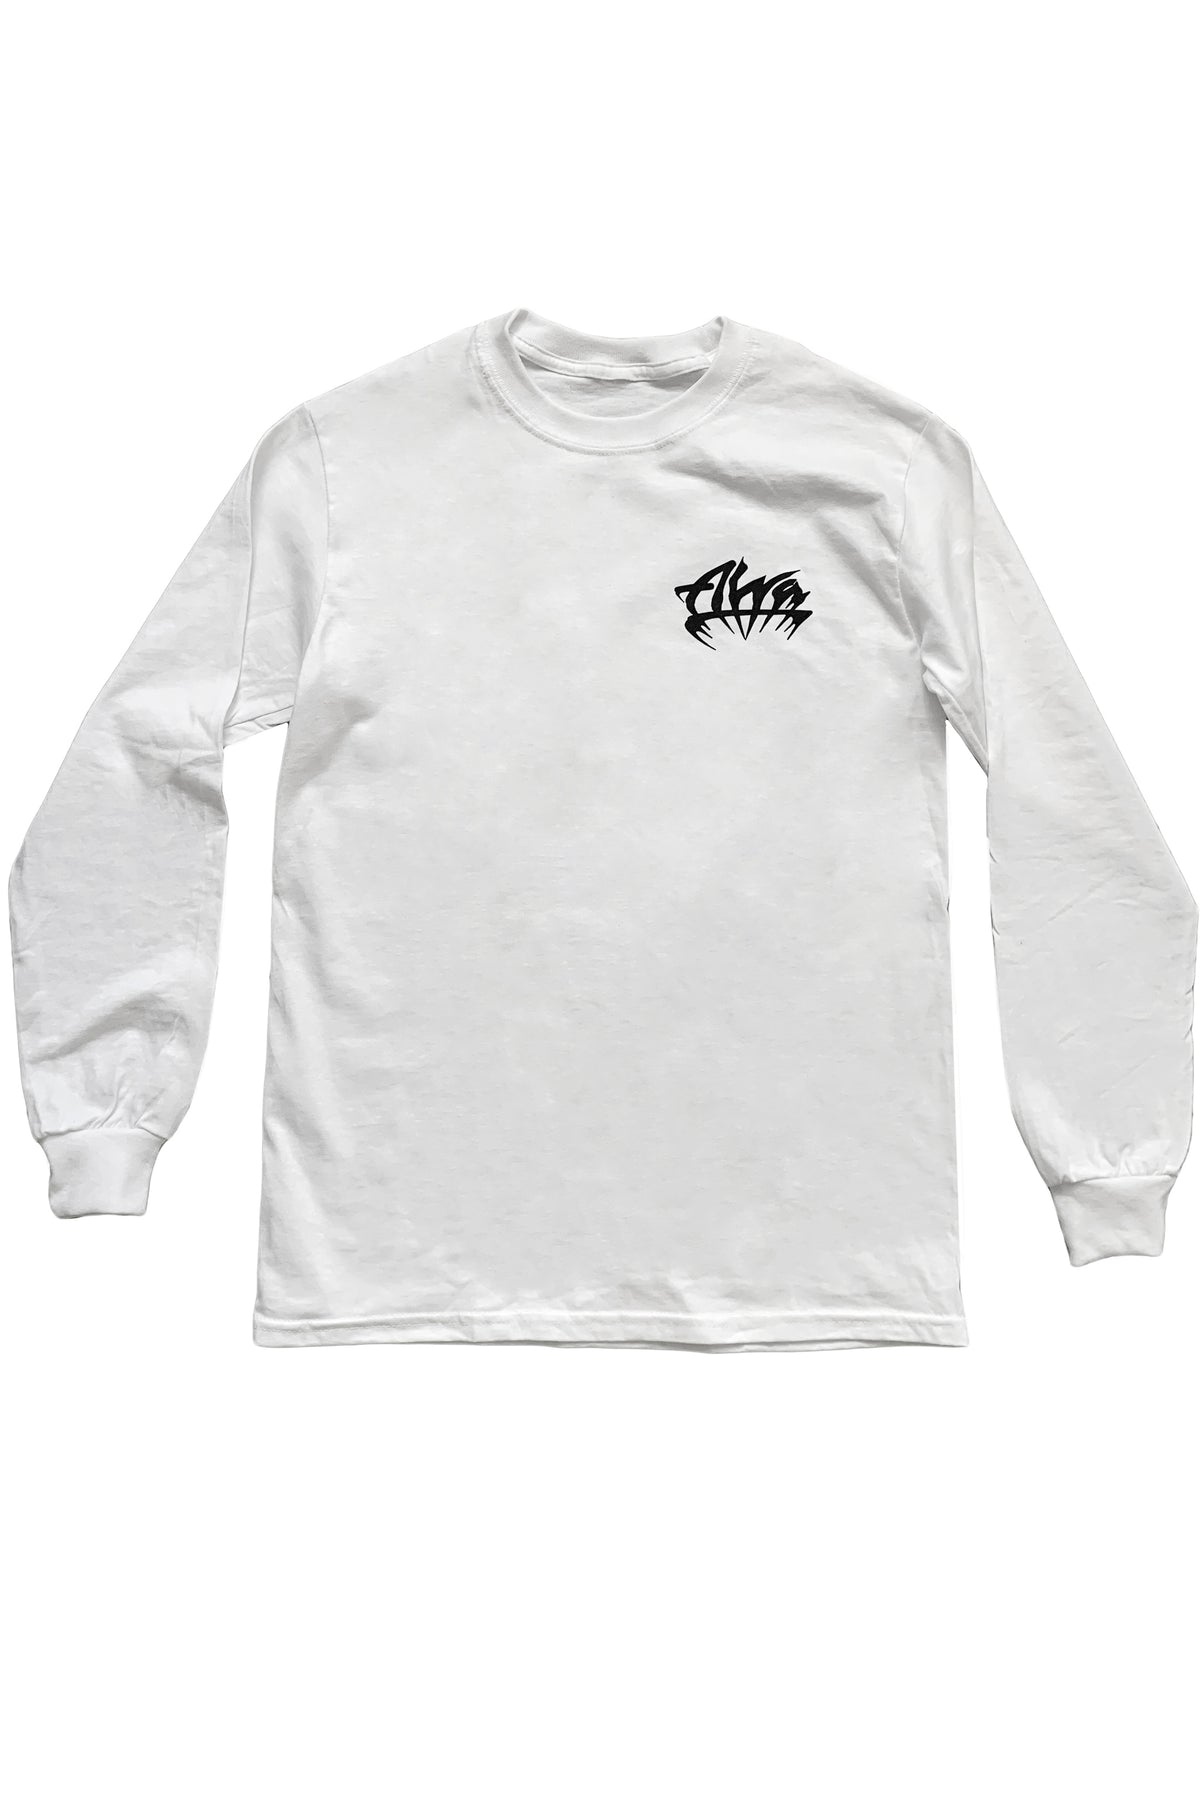 ALVA WHITE GOTH LOGO LONG SLEEVE